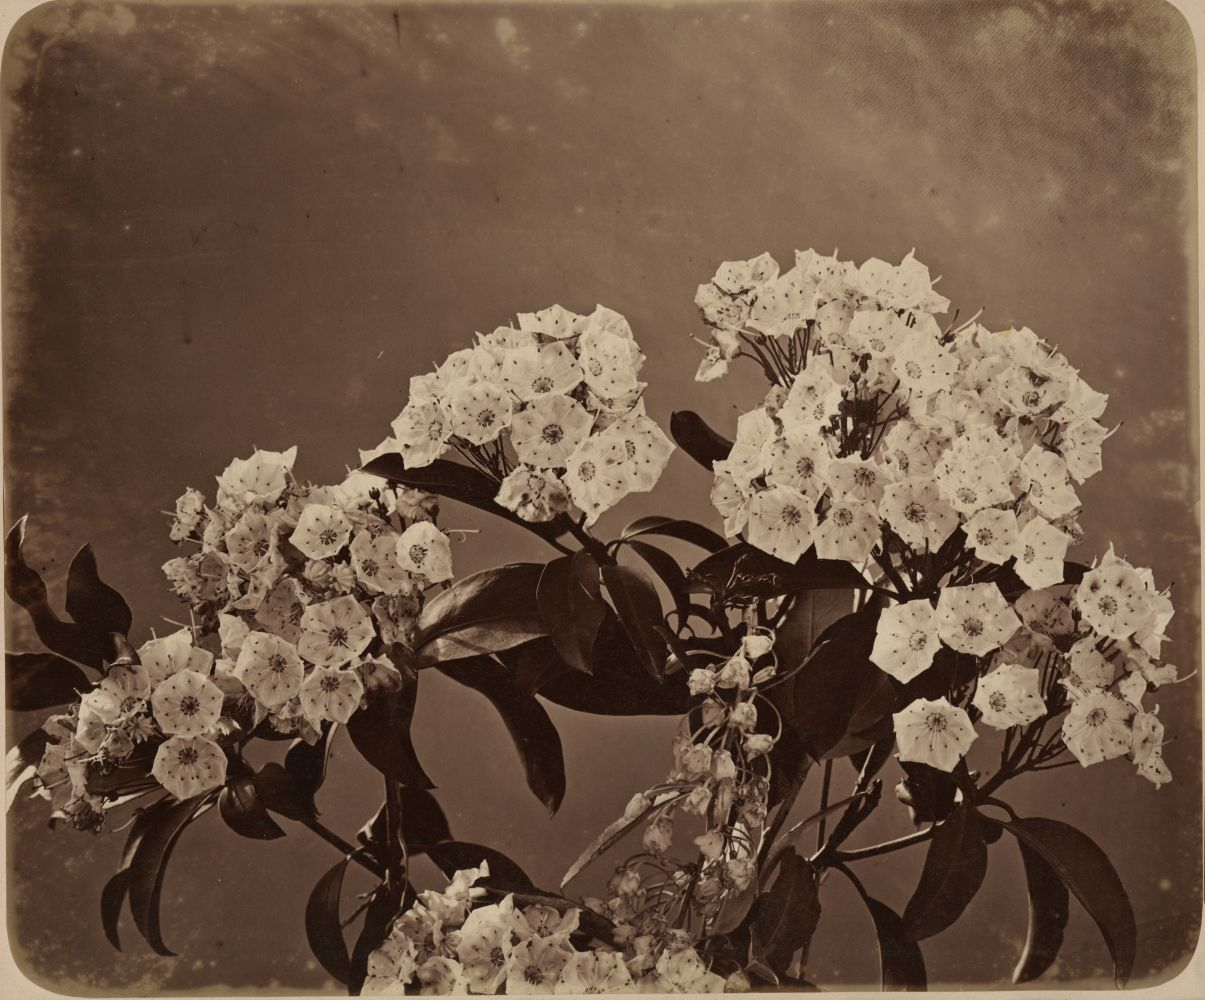 Adolphe BRAUN (French, 1812-1877) Mountain laurel, 1854 Albumen print from a collodion negative 30.8 x 36.8 cm mounted on 48.8 x 61.0 cm paper